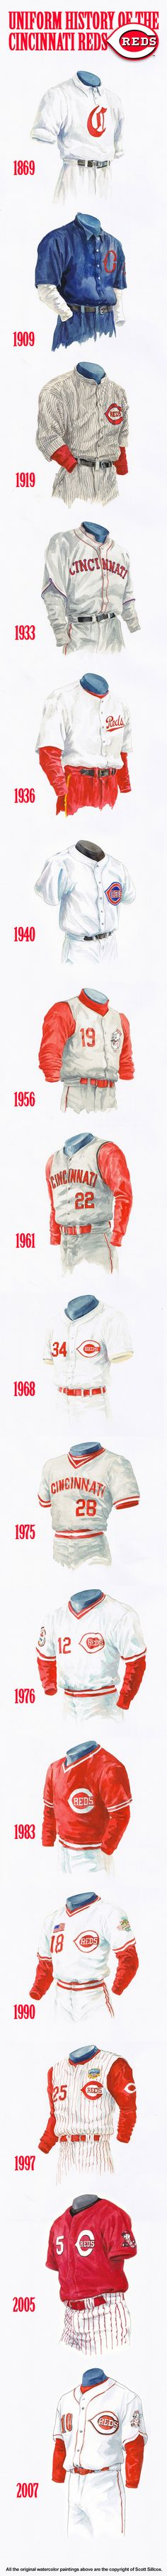 The Uniform History of the Cincinnati Reds, love the 1968 uniforms.